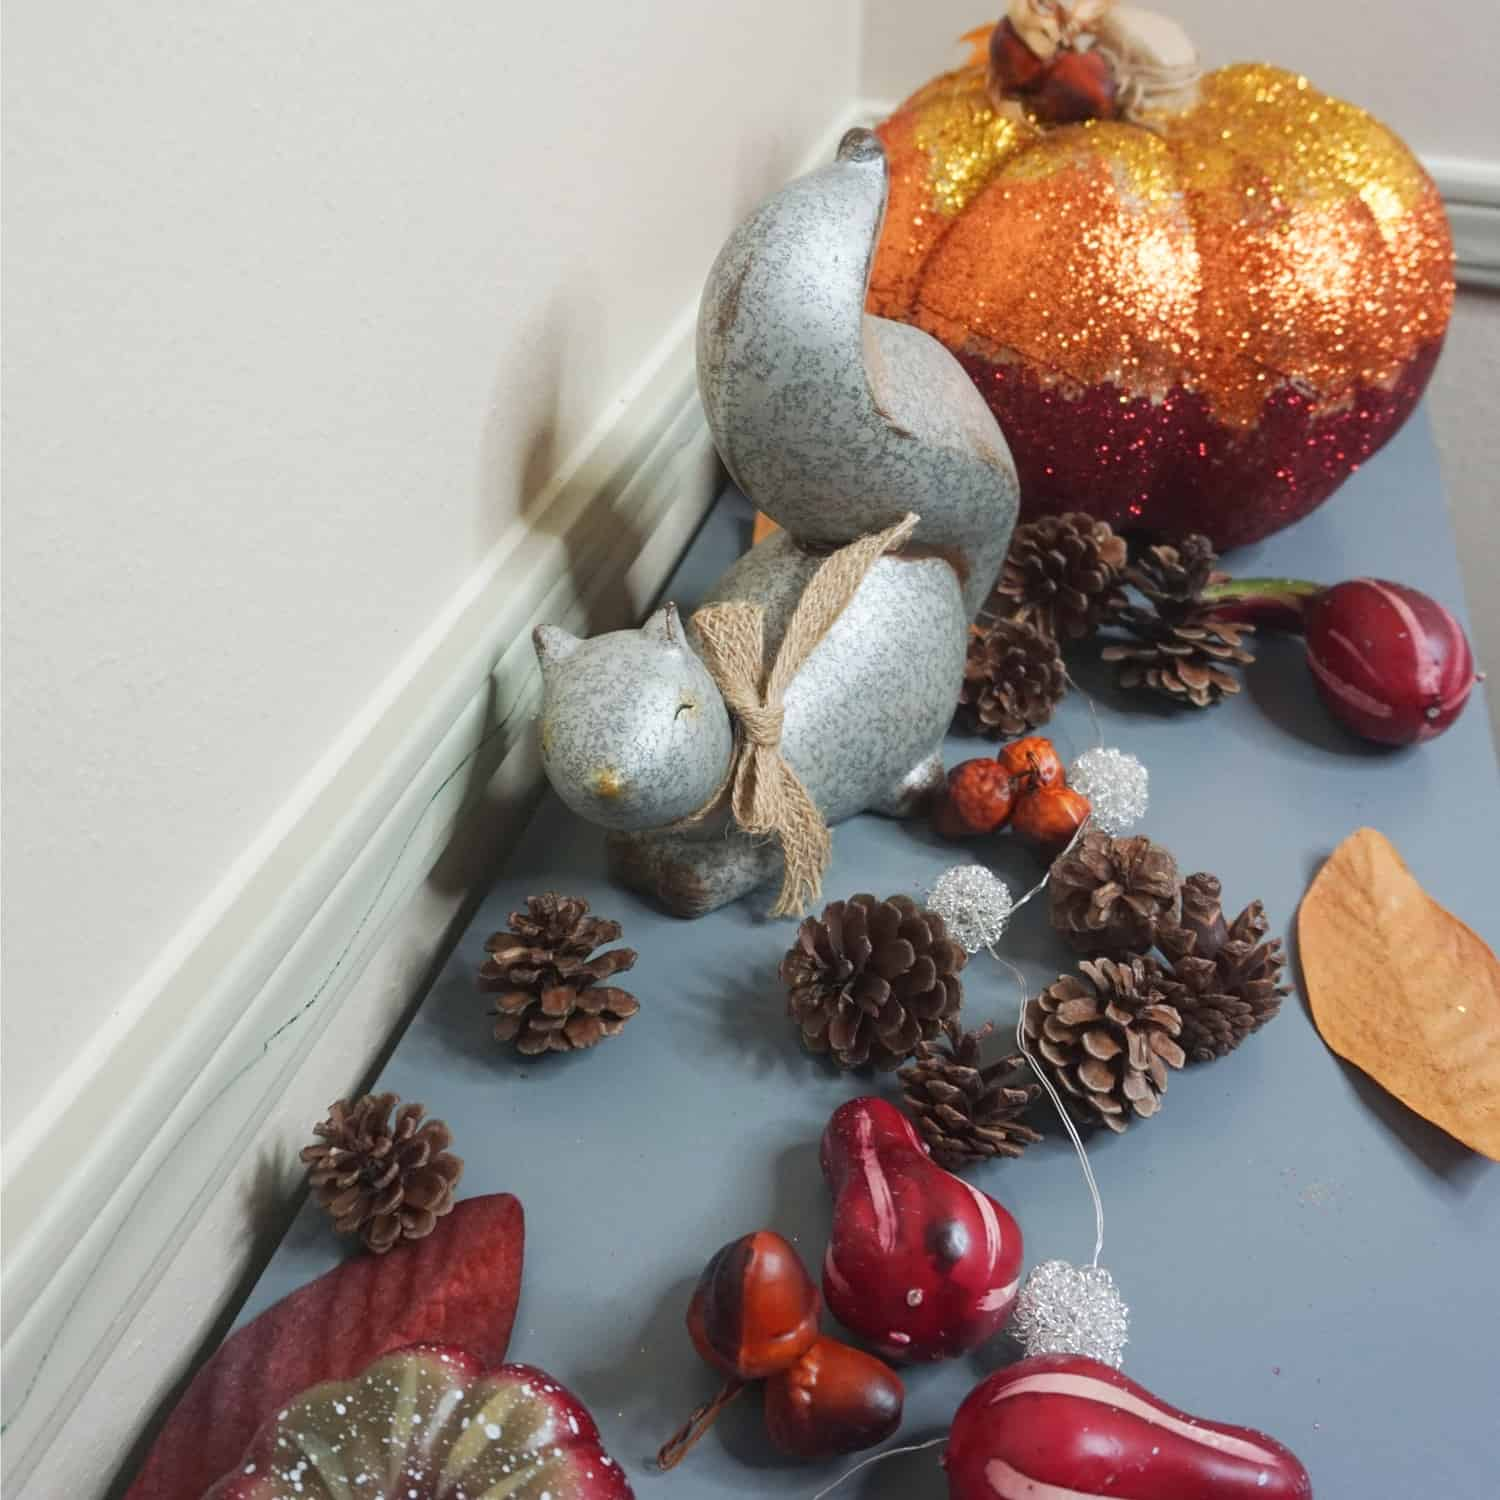 #ad When it comes to welcoming fall into your home, there's so much more to it than beautiful decorations—although some leaves, pumpkins, and pinecones never hurt! Like this DIY FALL ENTRYWAY CRANBERRY CENTERPIECE I made from Febreze WAX MELTS and other supplies I found at Dollar General! #nerdymammablog #fall #decor